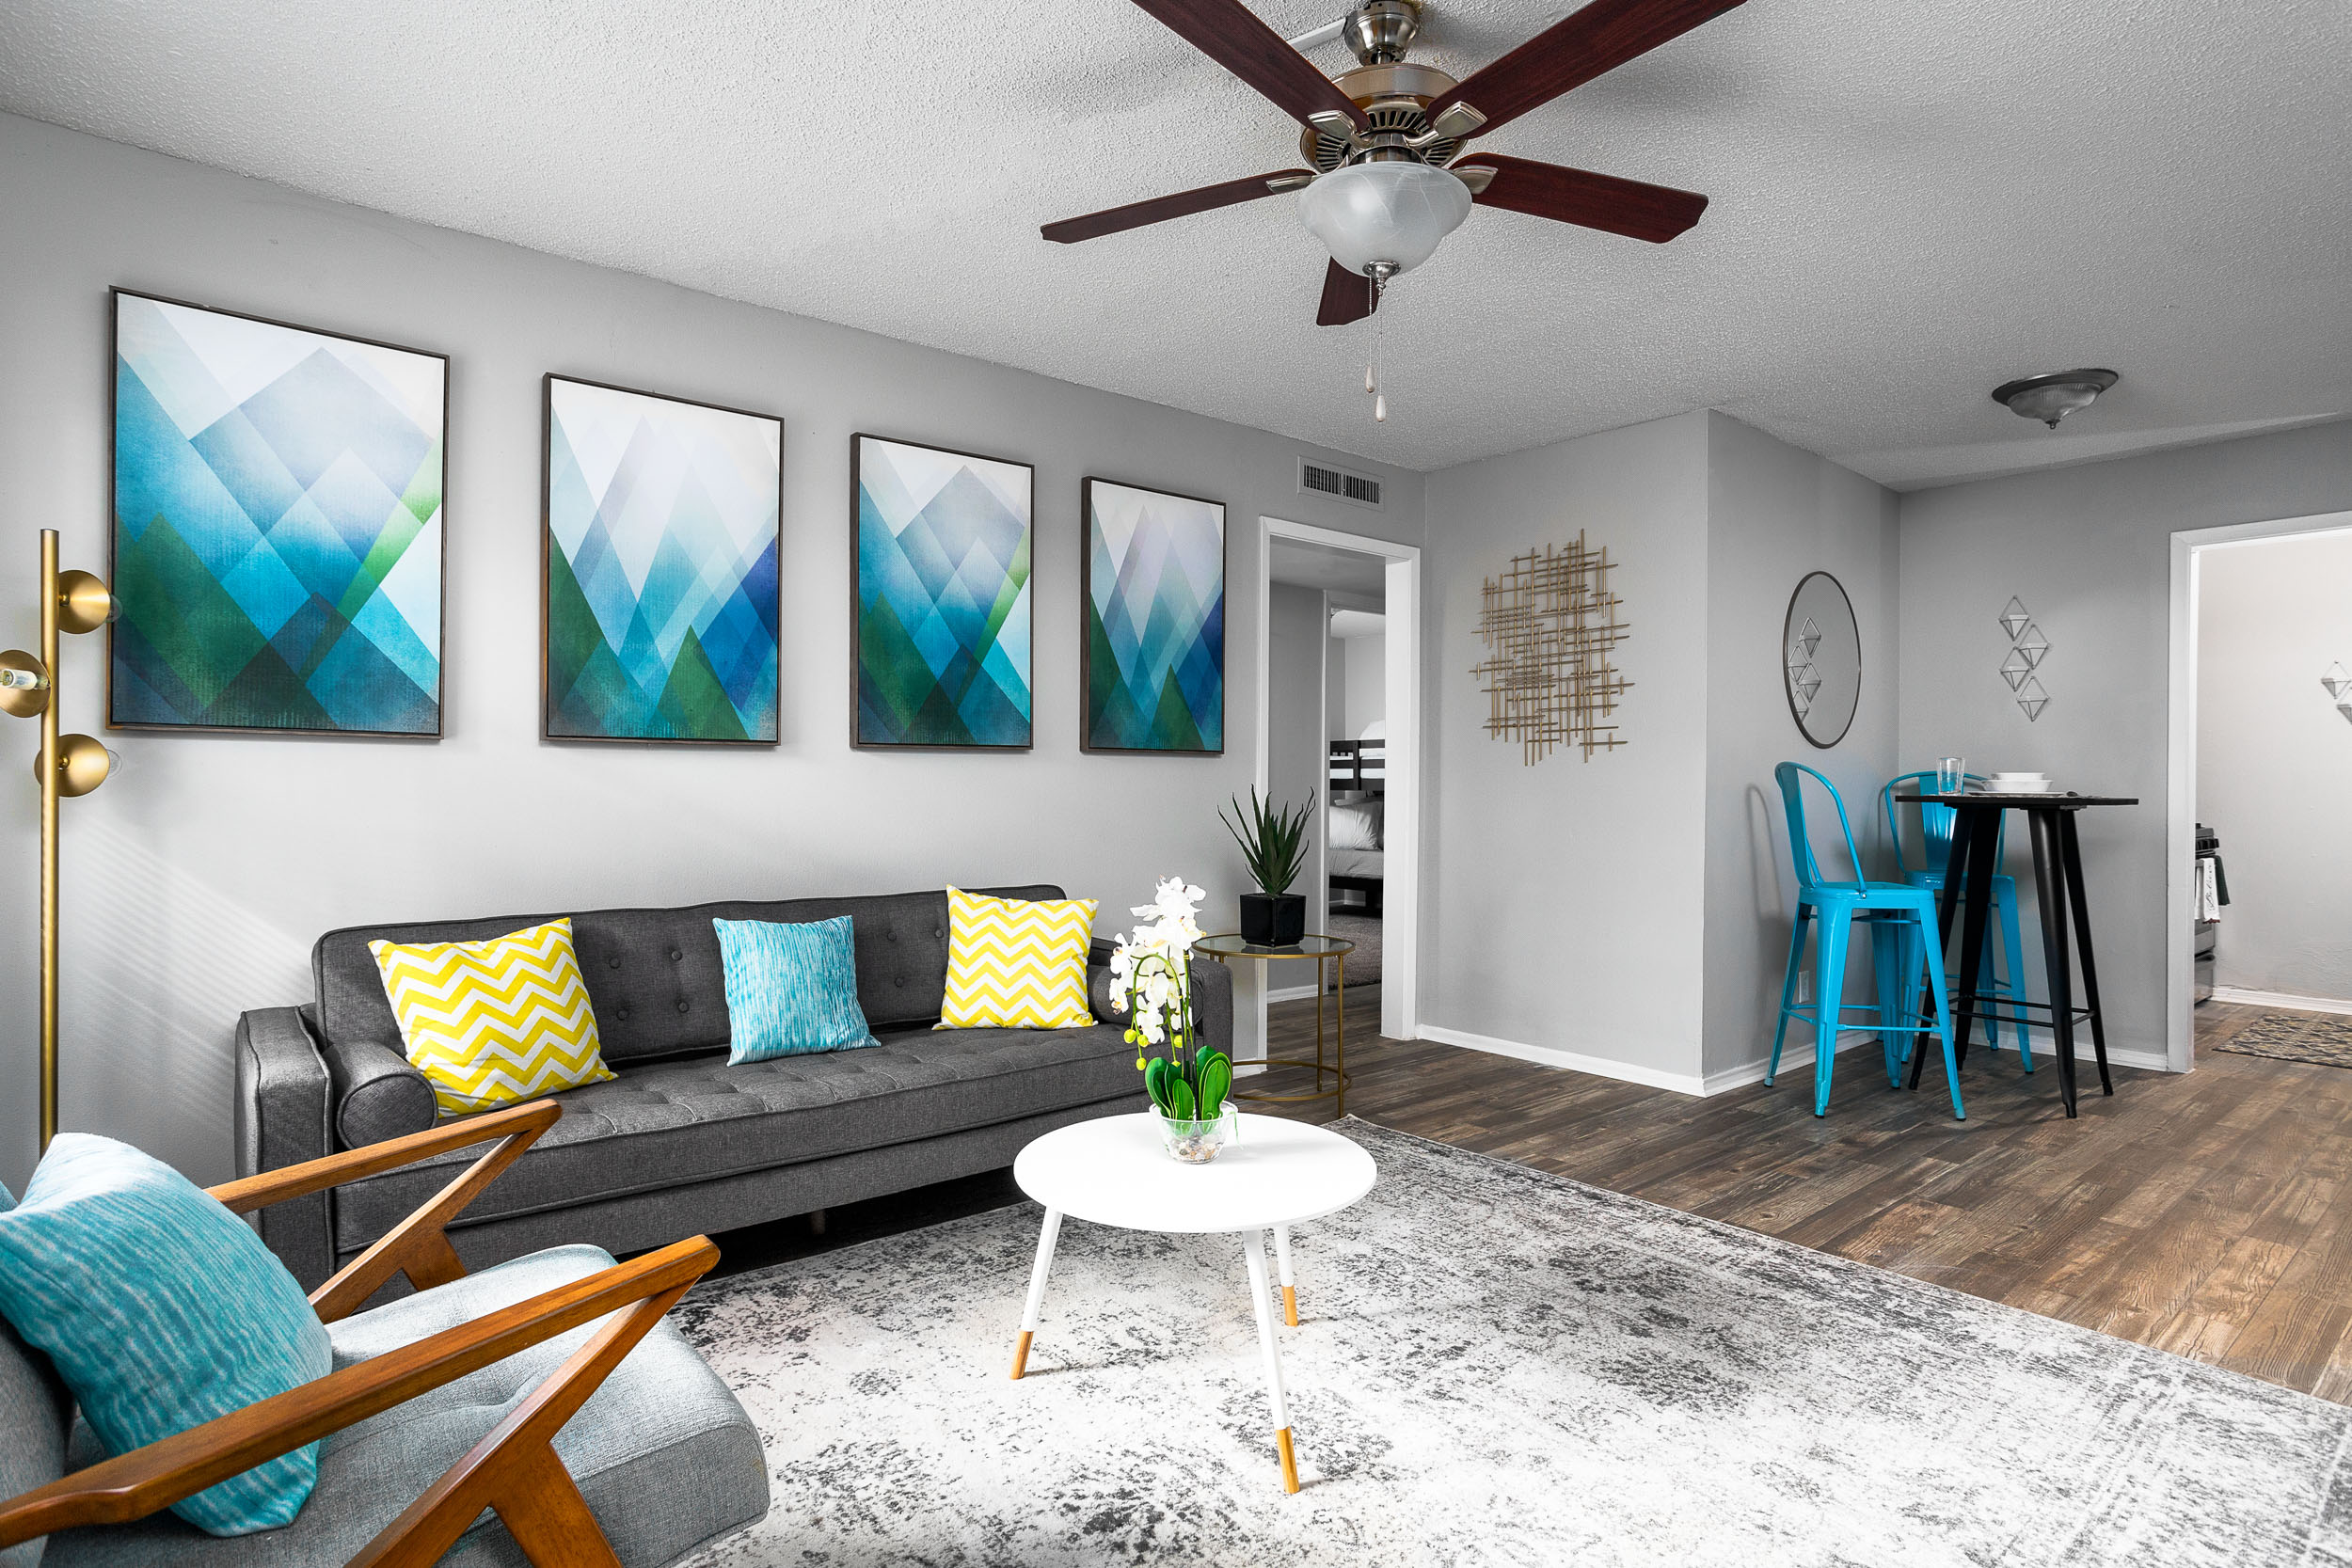 Open Floor Plans at Presidio Flats Apartments in San Antonio, Texas